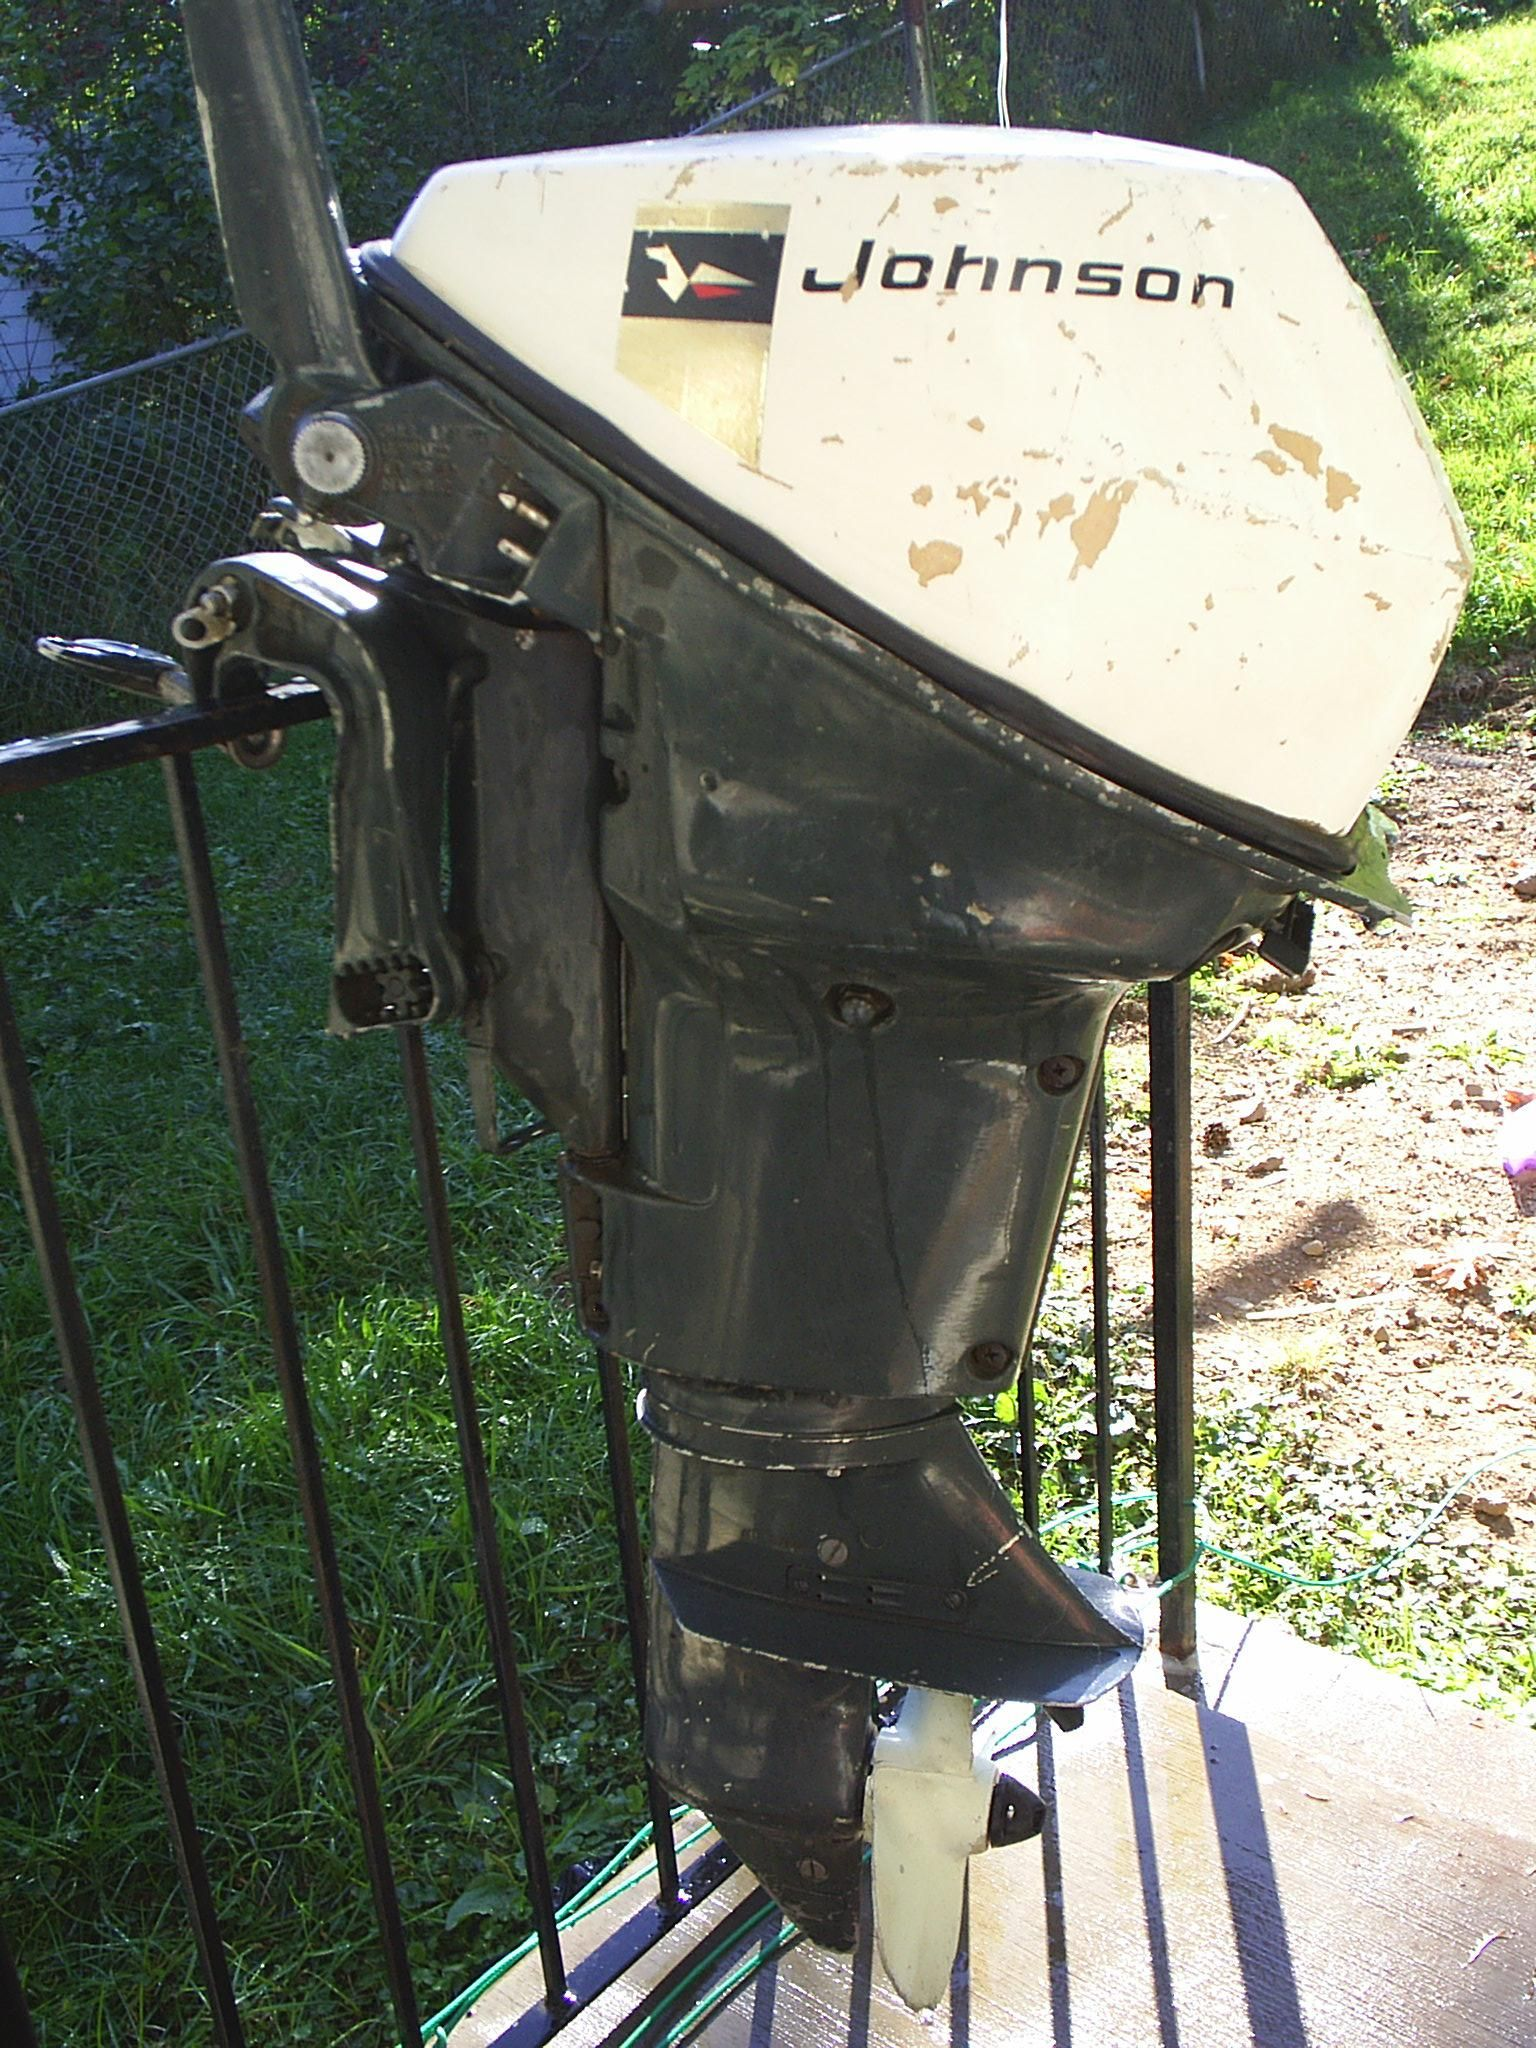 late 60s Johnson 9.5 hp cool motor Outboard Motors, Old Boats